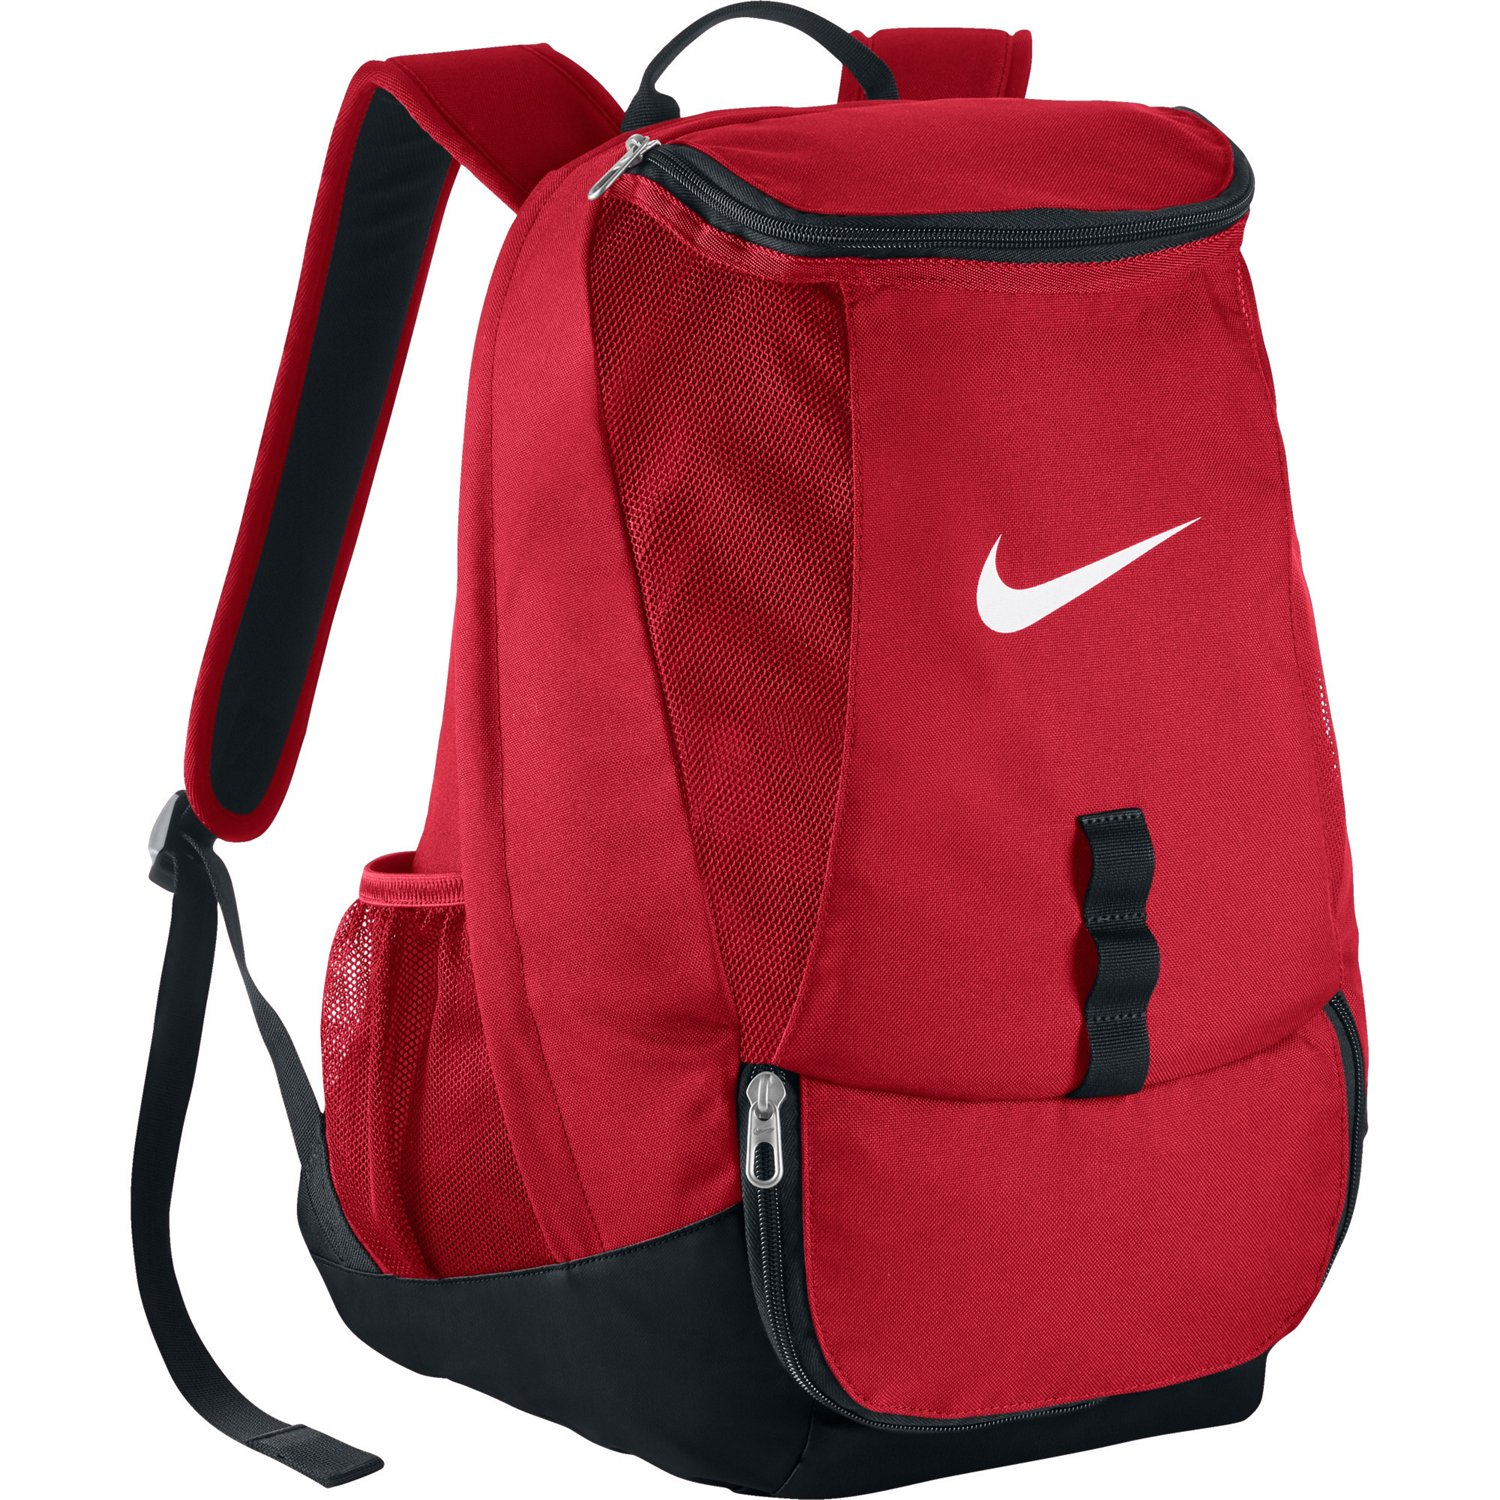 c628794b66ae Display product reviews for Nike Men s Club Team Swoosh Soccer Backpack